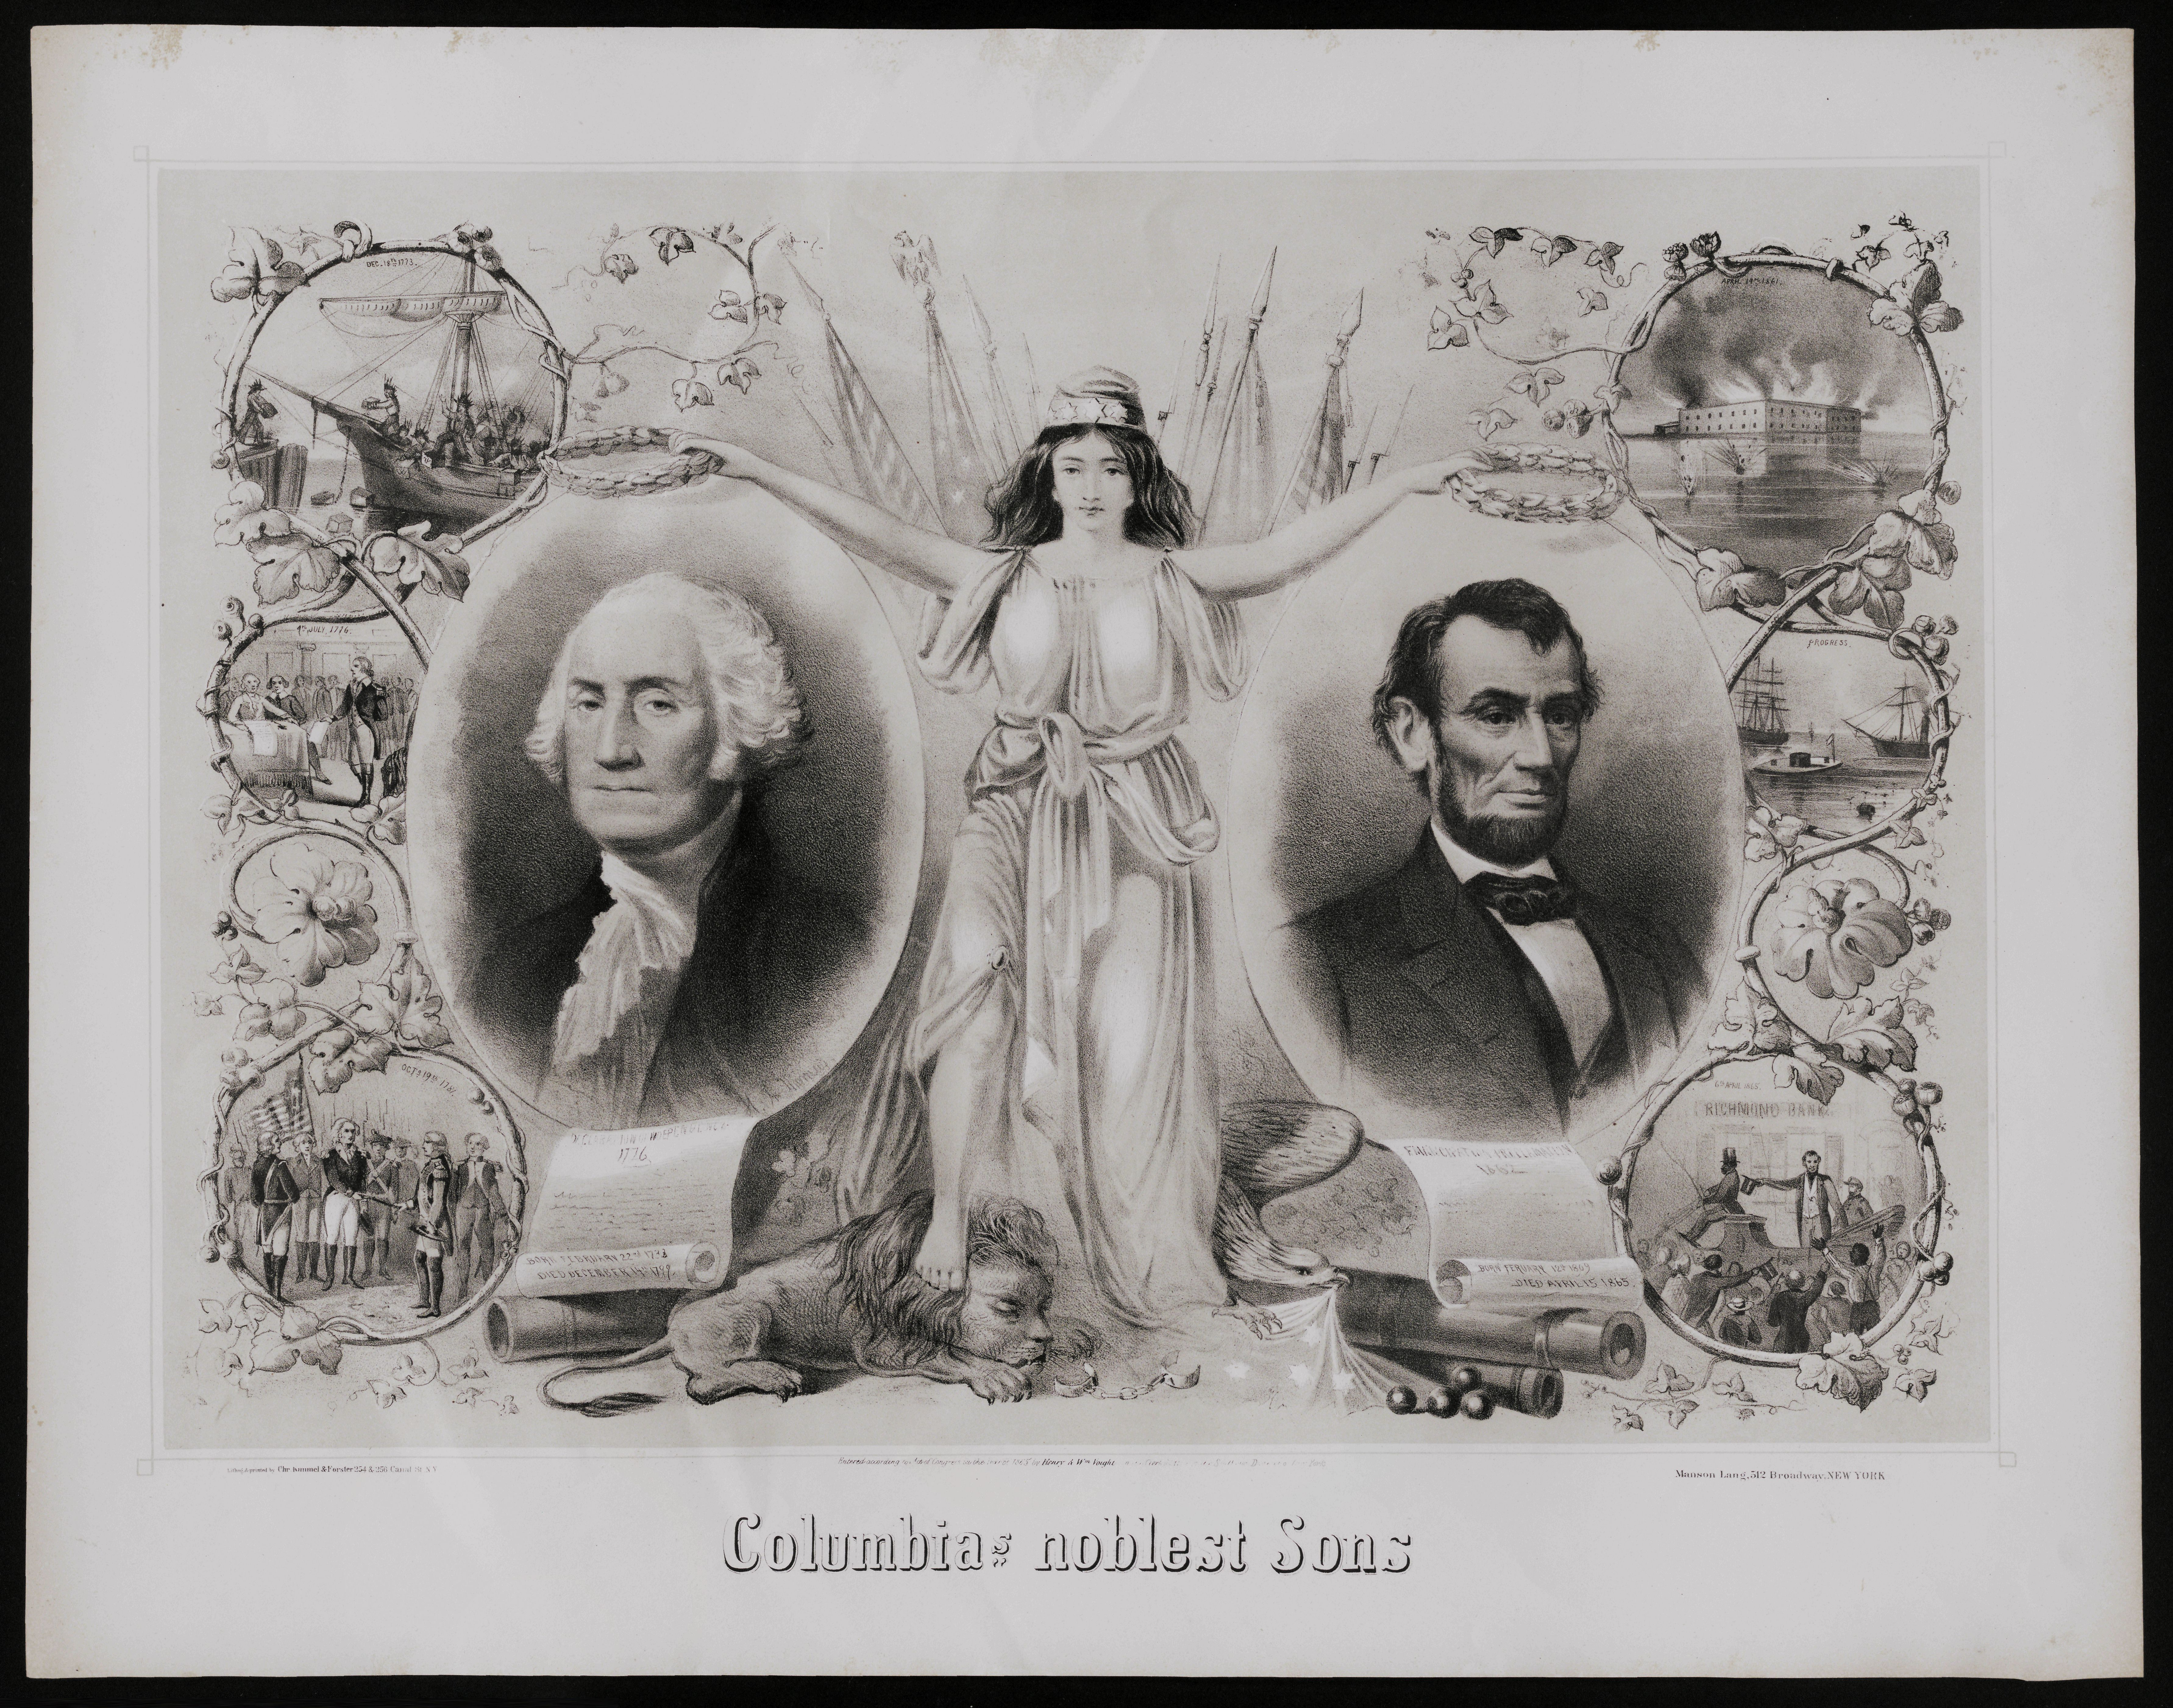 Columbia's Noblest Sons, printed by Kimmel and Forster, New York, 1865 (The Gilder Lehrman Institute of American History, GLC02597)